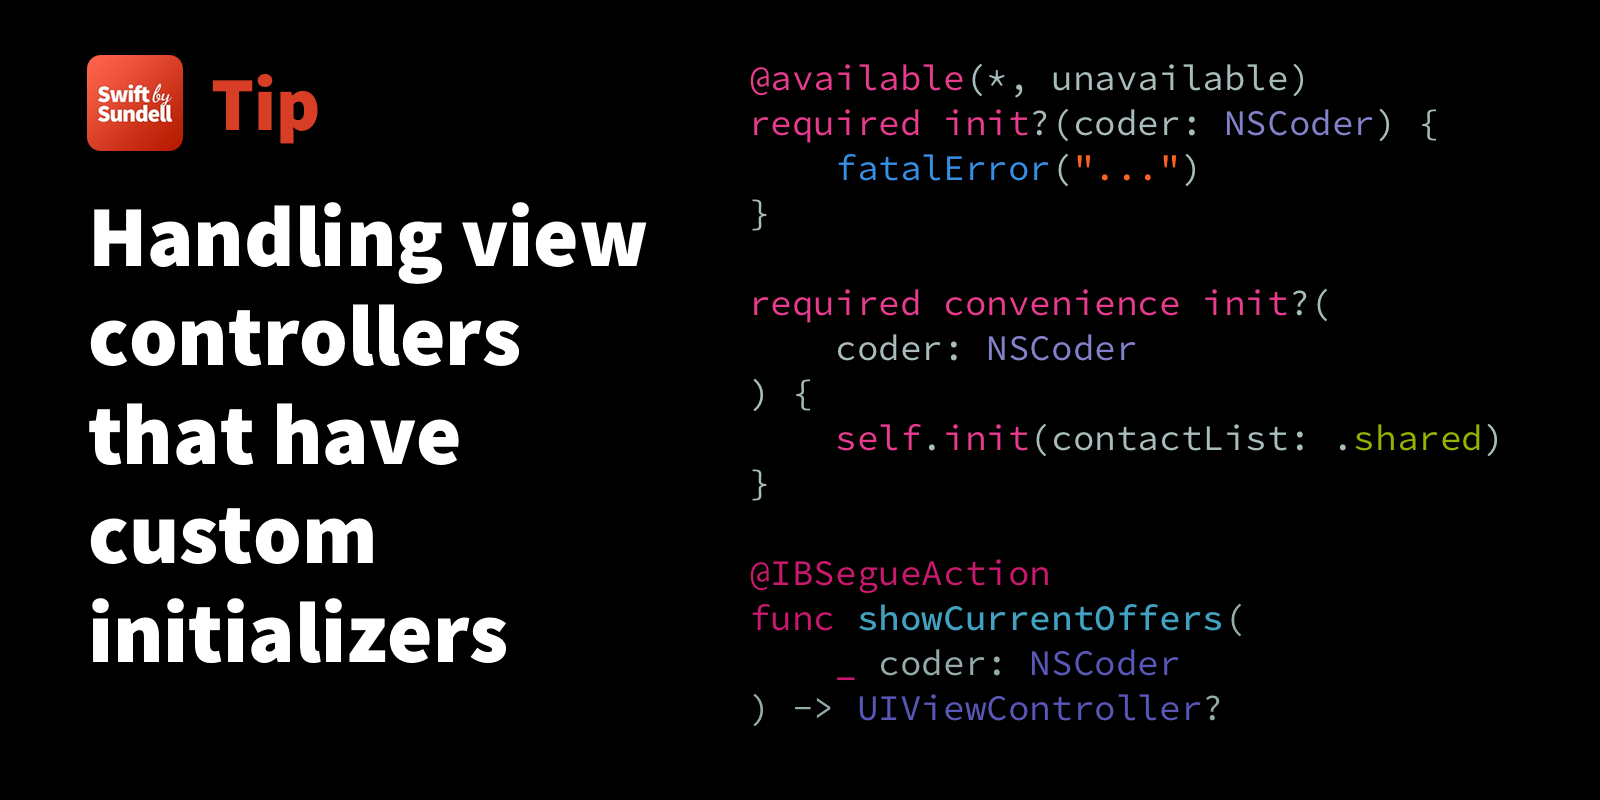 Handling view controllers that have custom initializers